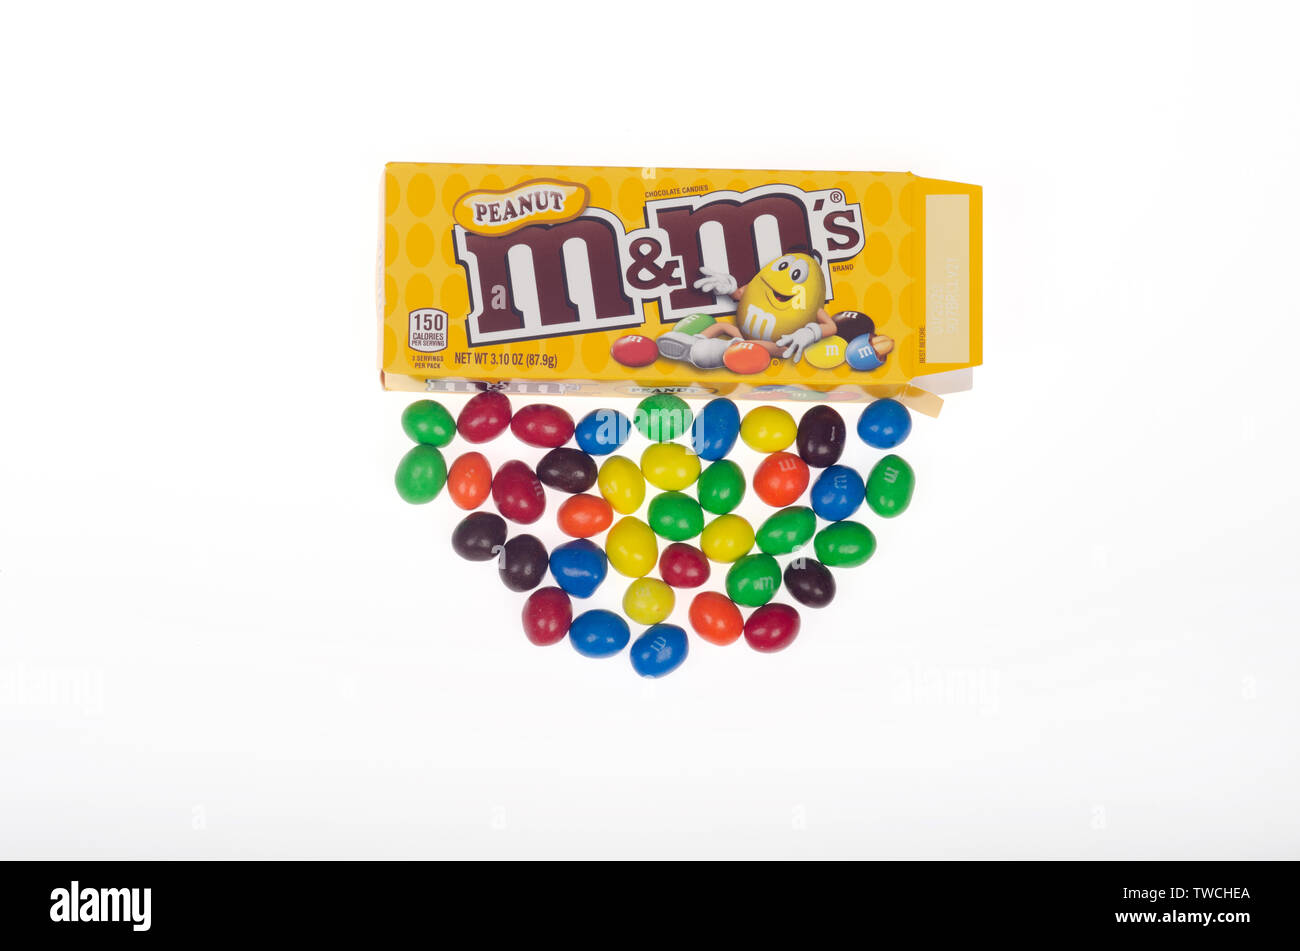 Peanut M&M's candy multi-color snacks with milk chocolate, candy coating & roasted peanuts & box package by Mars, Inc. on white - Stock Image